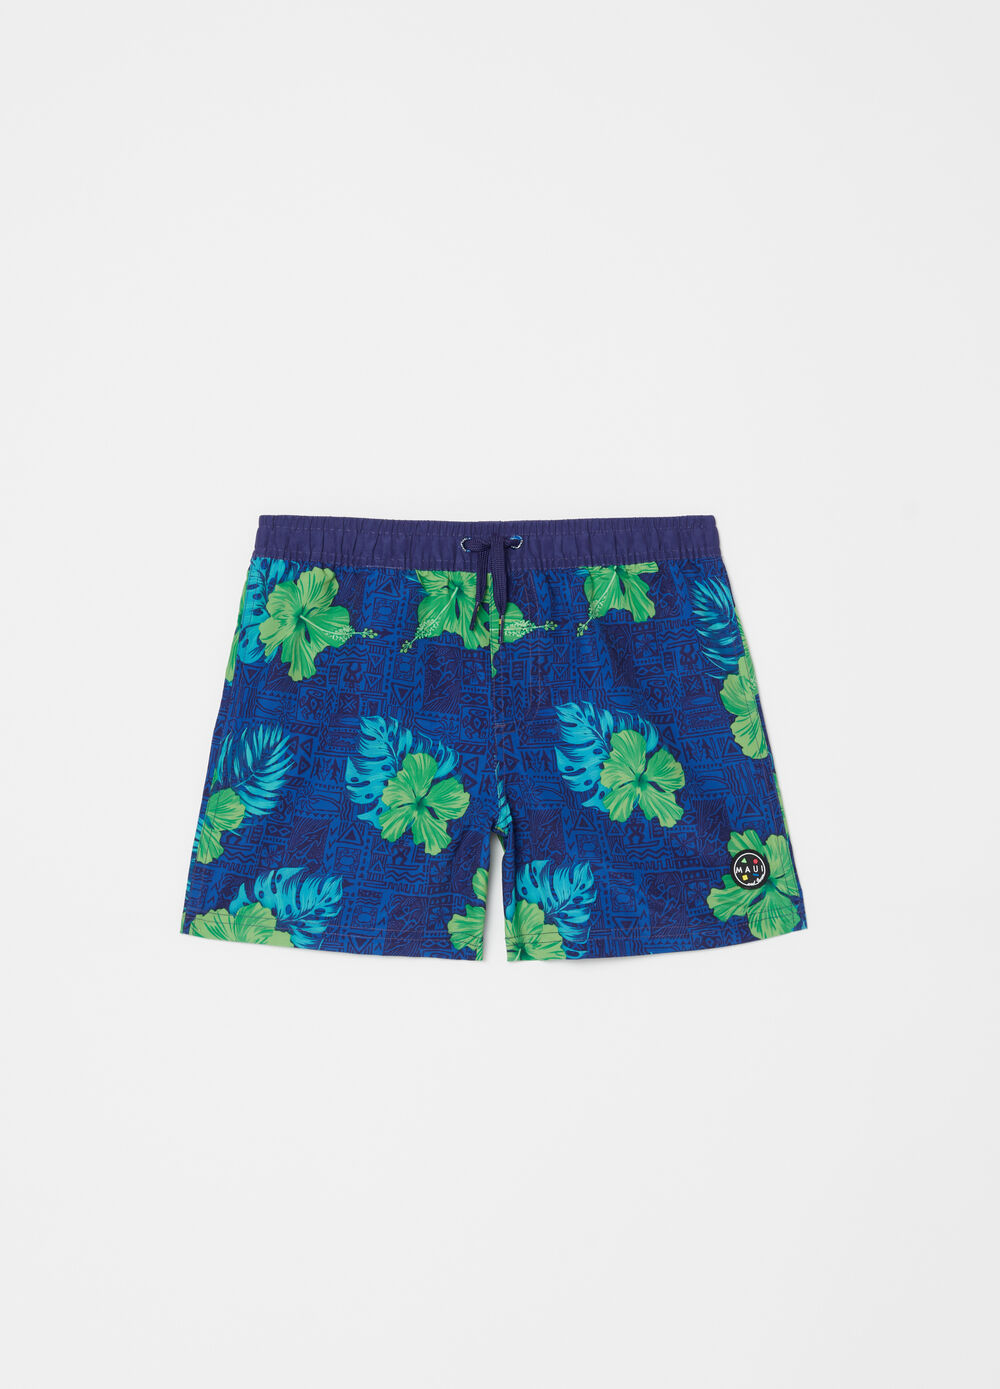 Floral ethnic swim boxer shorts by Maui and Sons